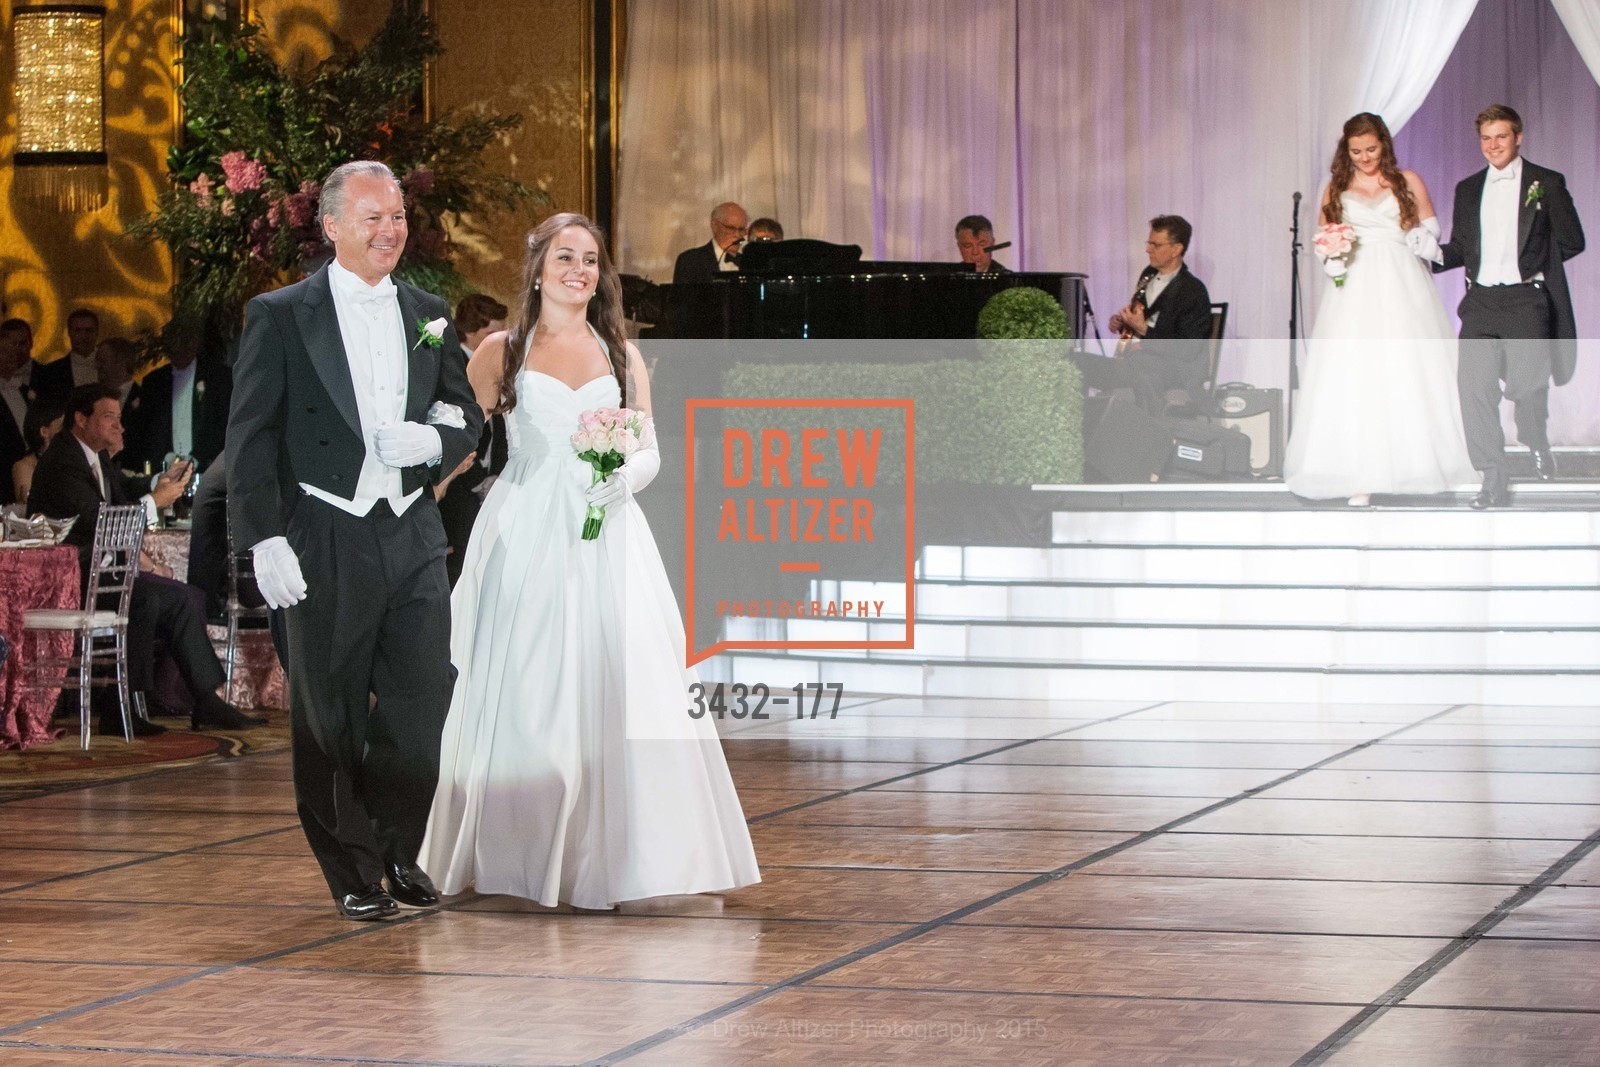 Jeffrey Patrick Cusack, Hailey Elizabeth Cusack, The 2015 San Francisco Debutante Ball, The Westin St. Francis San Francisco Union Square. 335 Powell St, June 20th, 2015,Drew Altizer, Drew Altizer Photography, full-service event agency, private events, San Francisco photographer, photographer California